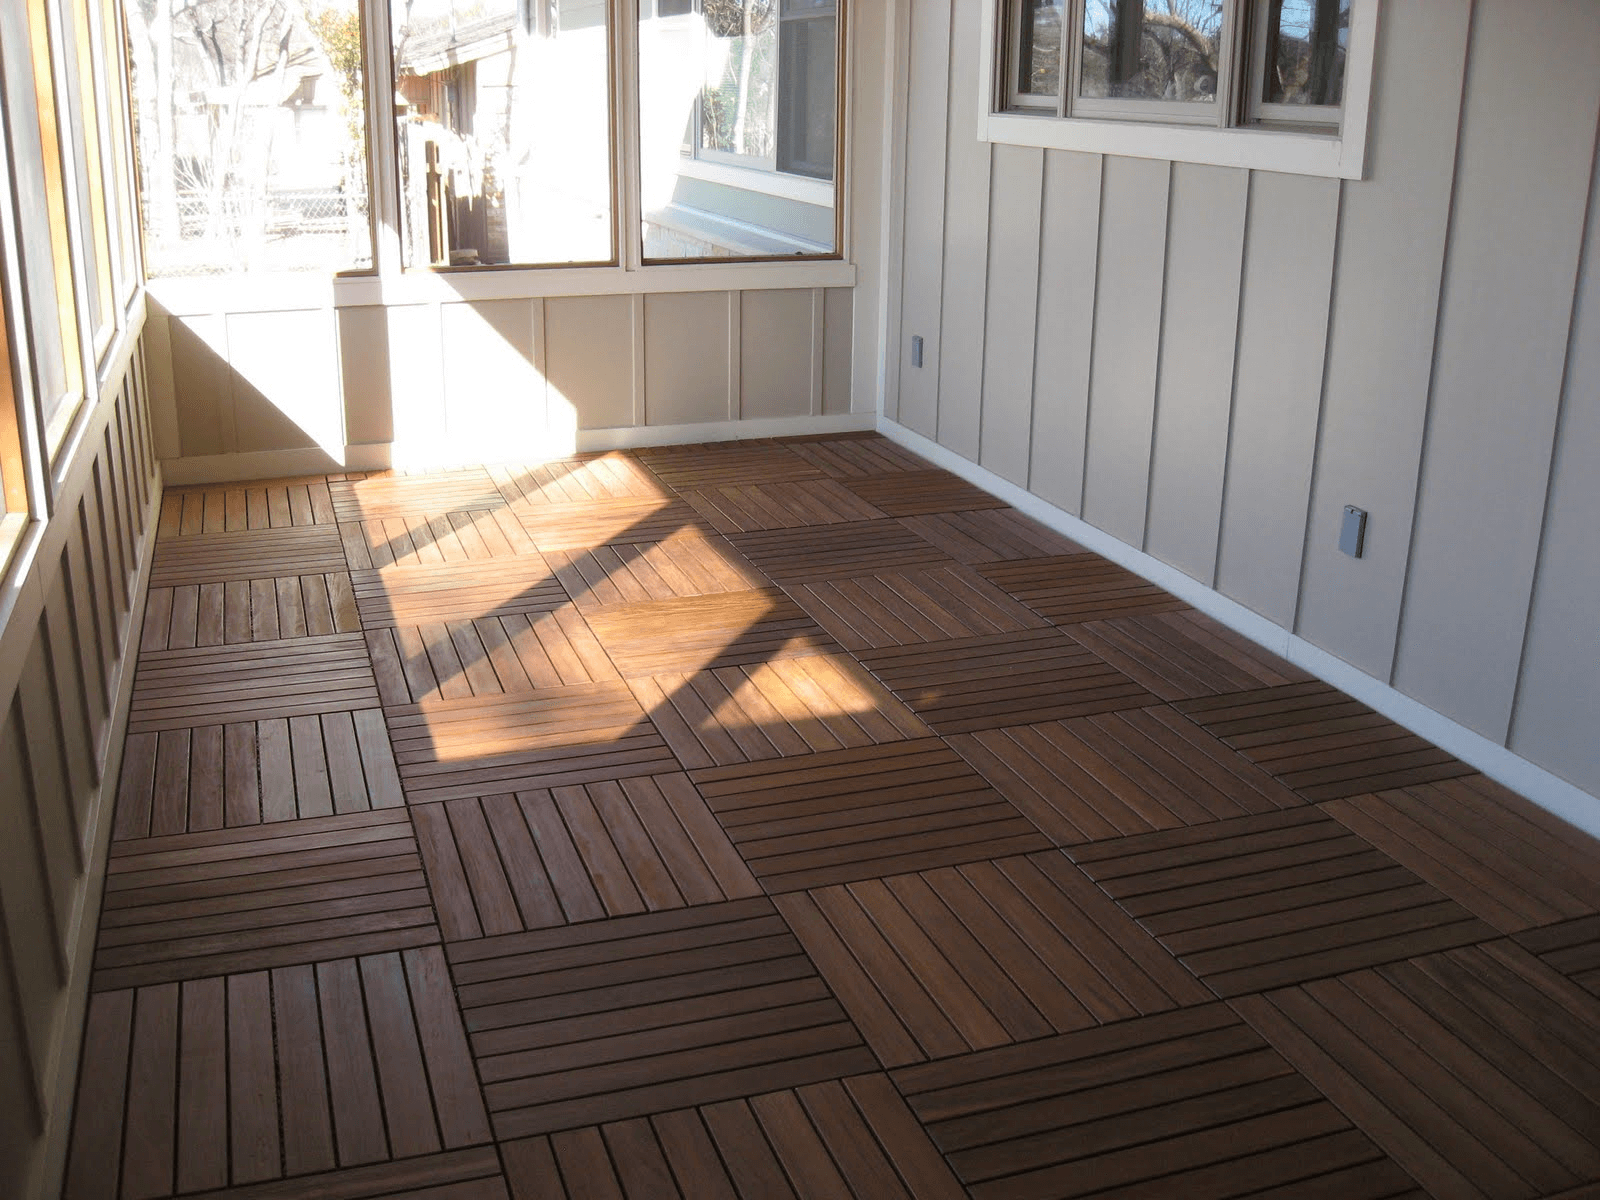 Screened In Porch Flooring Wooden Tiles